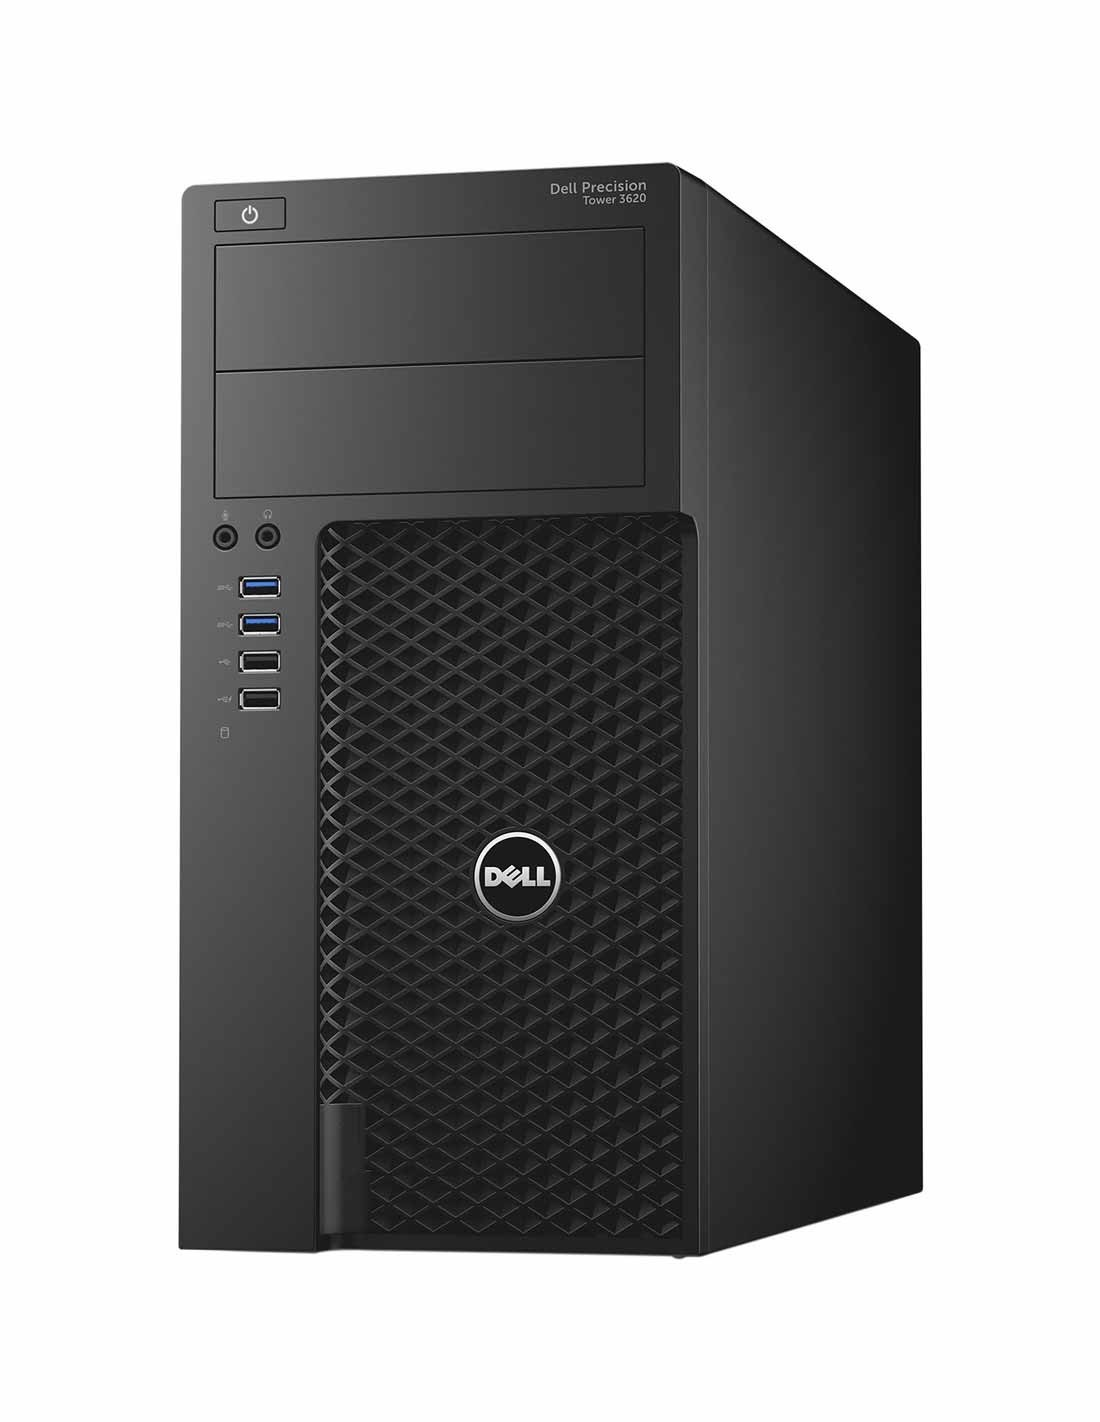 Dell Precision Tower 3620 E3-1270 v6 images and photos in Dubai computer store